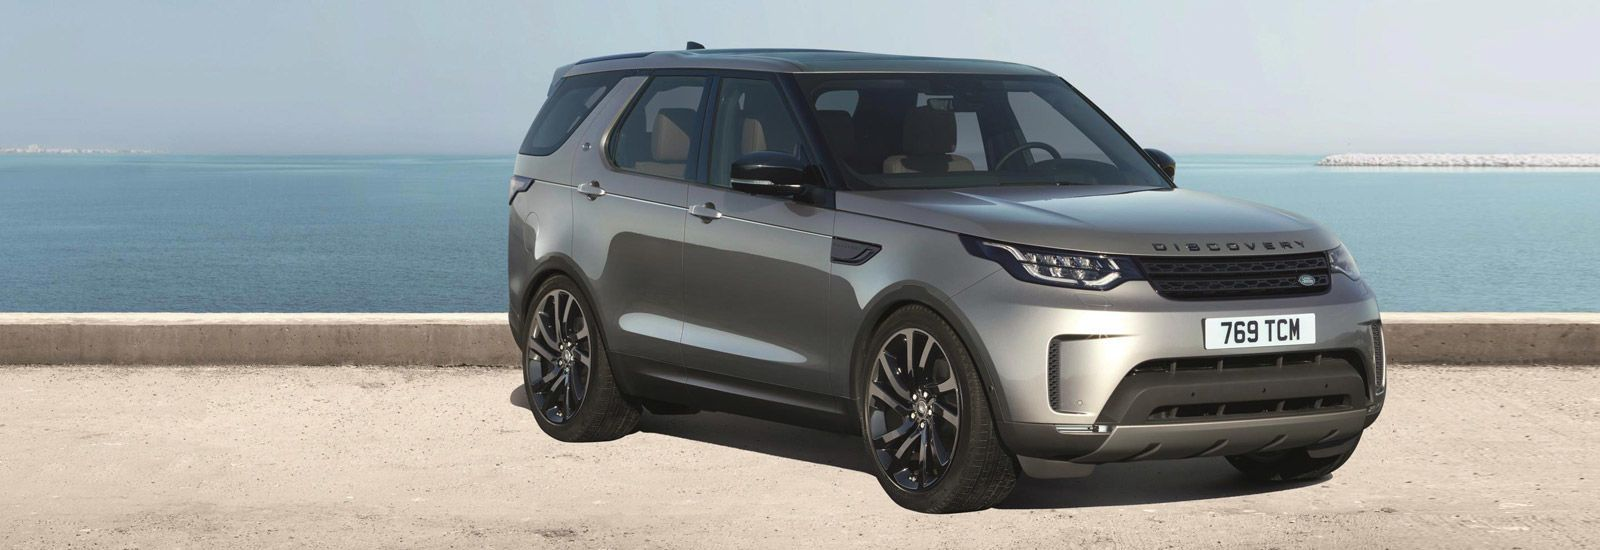 The new 2017 land rover discovery will be built at jaguar land rover s new plant in slovakia from a new plant with a capacity